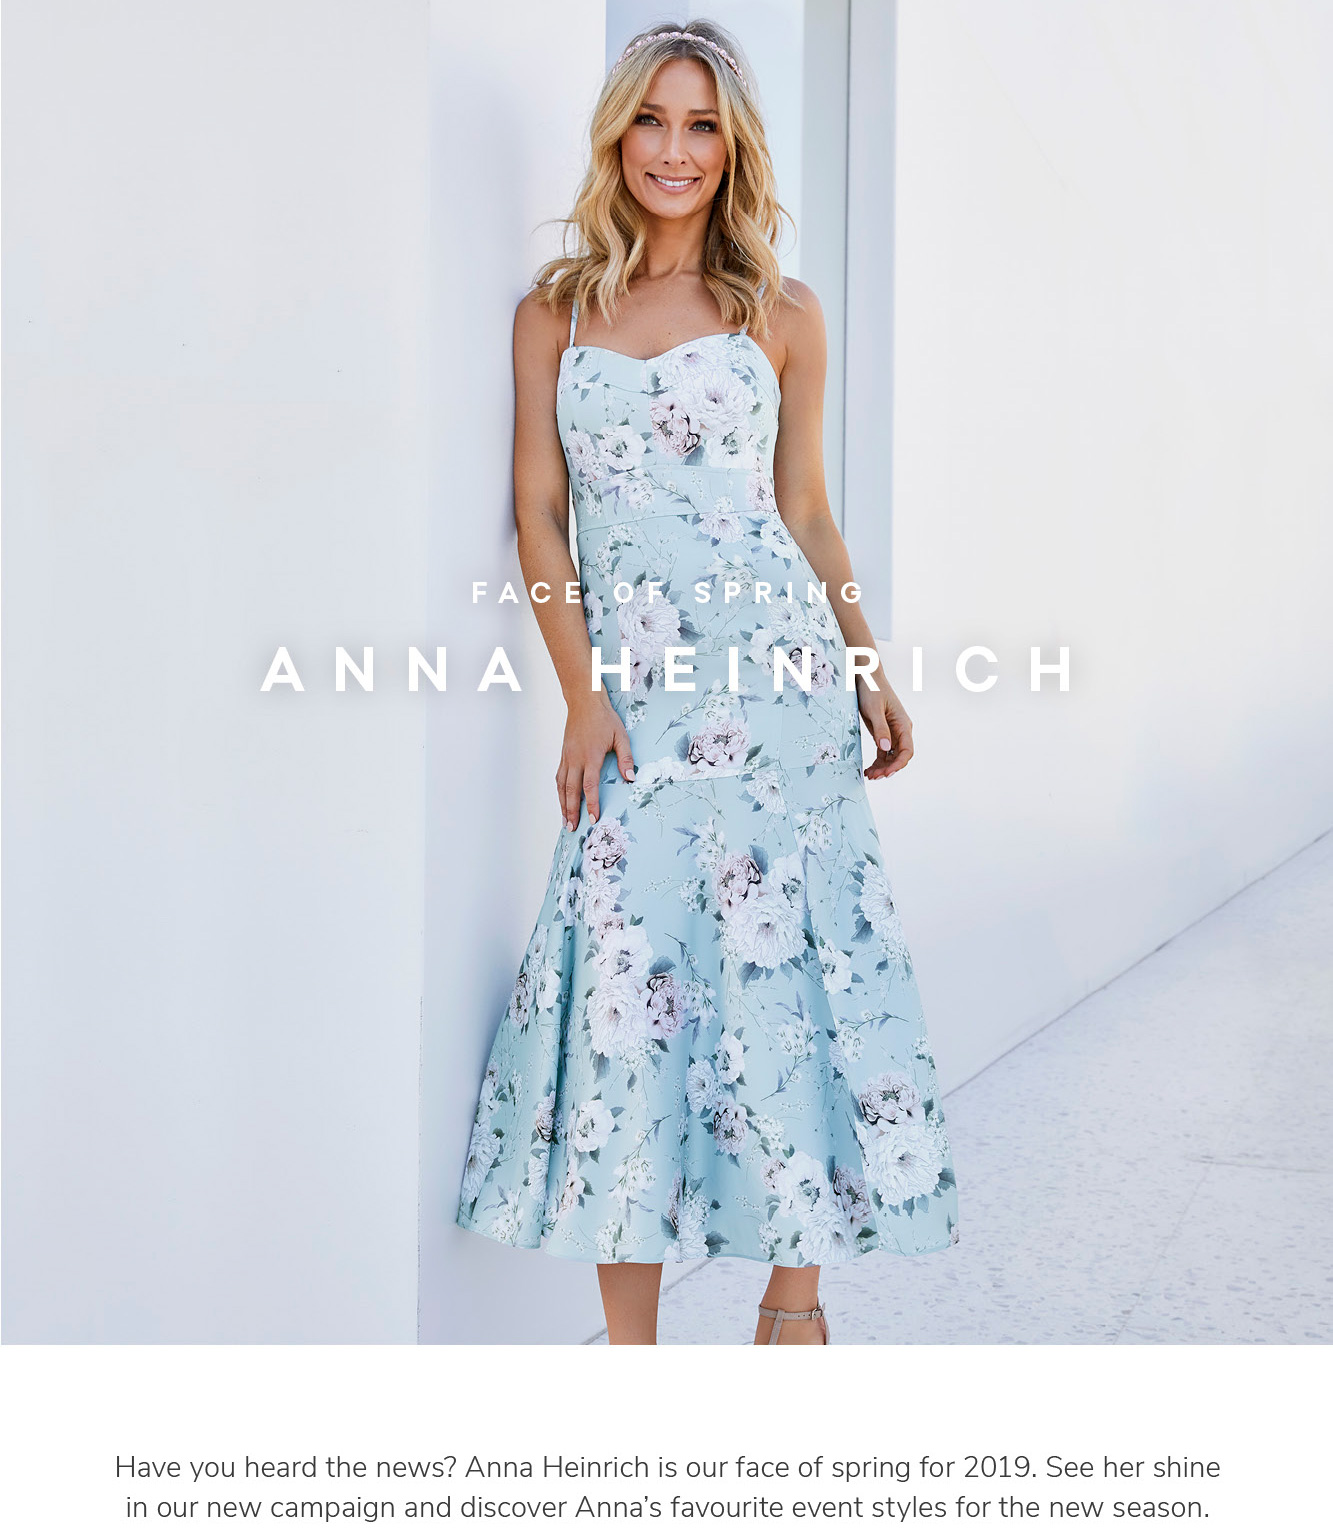 Face of spring. Anna Heinrich. Have you heard the news? Anna Heinrich is our face of spring for 2019. See her shine in our new campaign and discover Anna's favourite event styles for the new season.